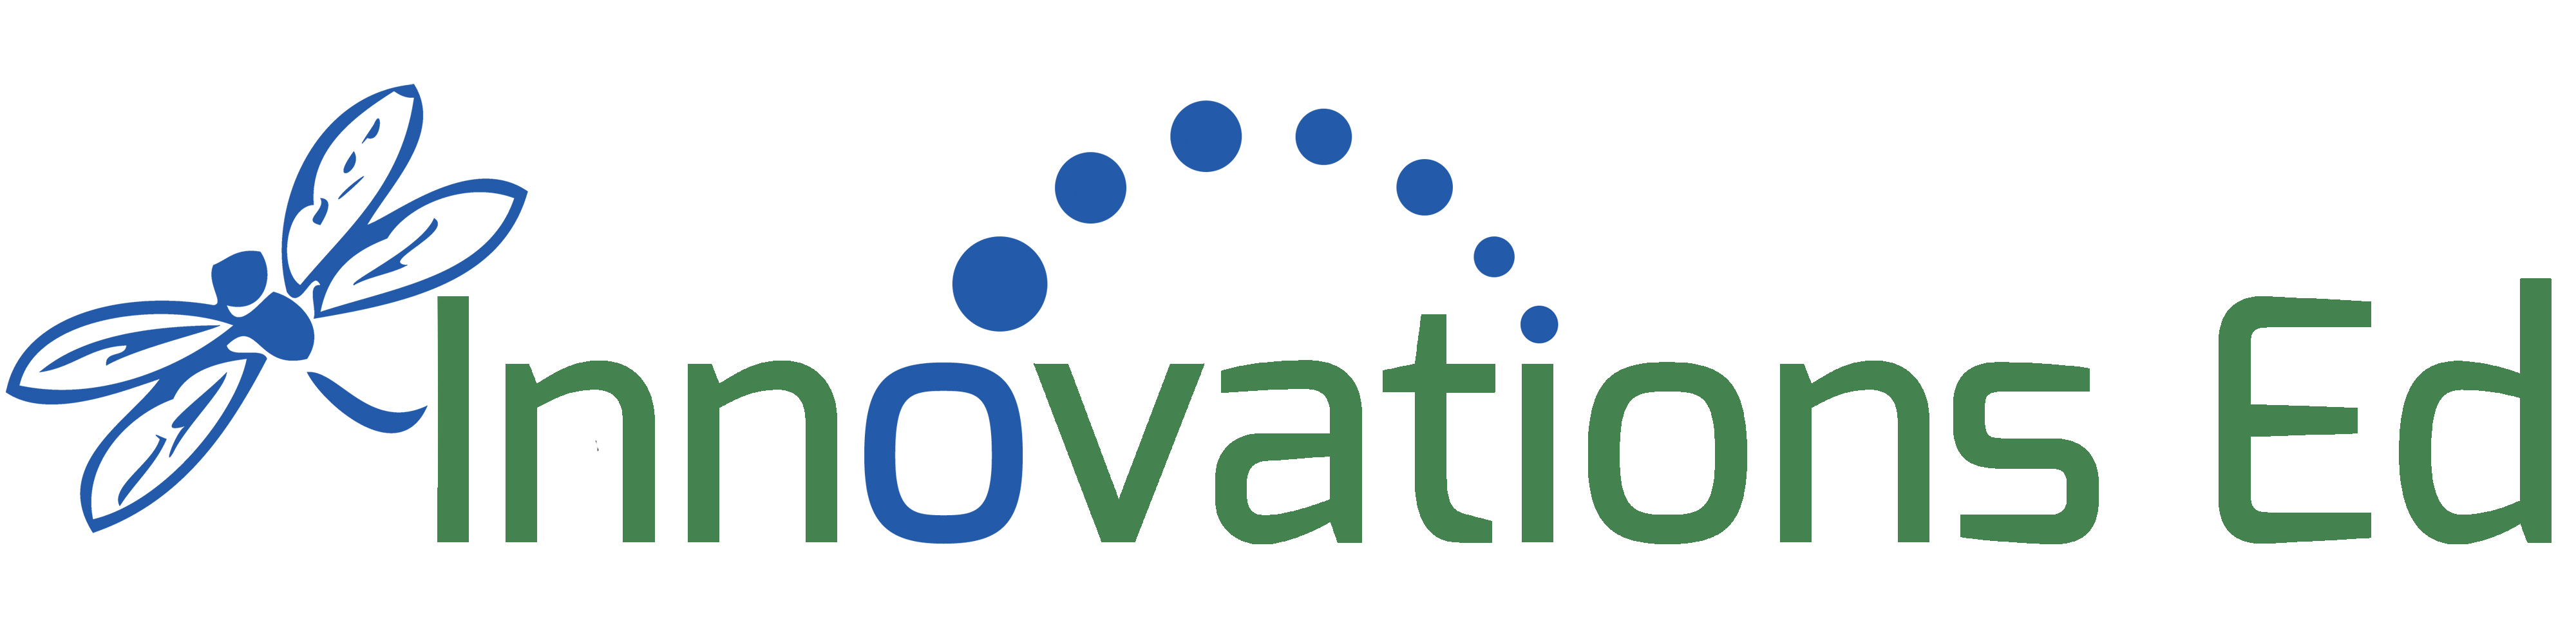 Innovations Ed